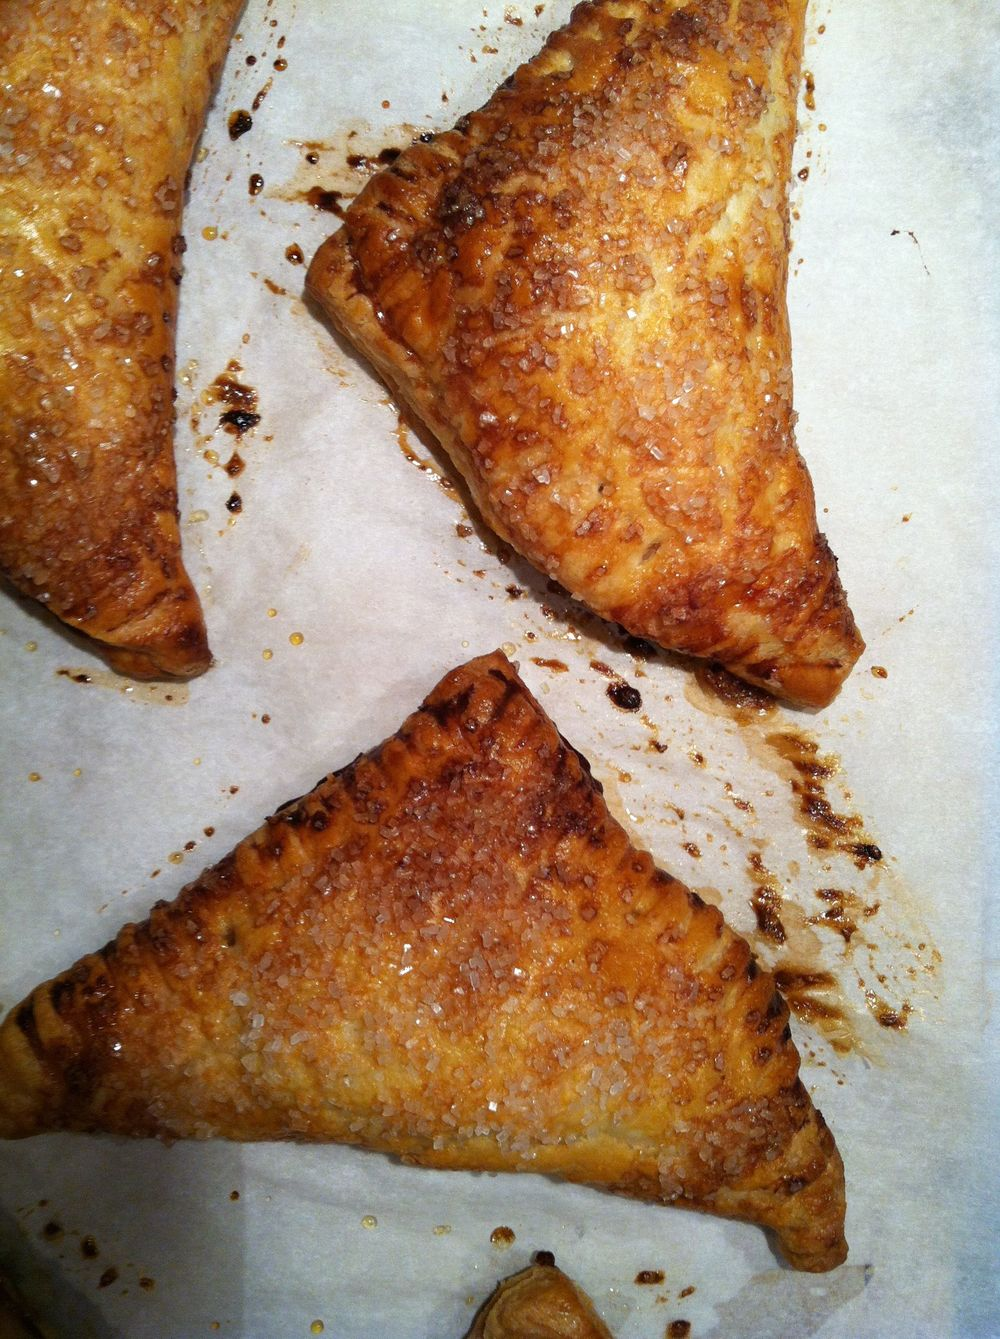 Apple turnovers, part of my kitchen to-do list.